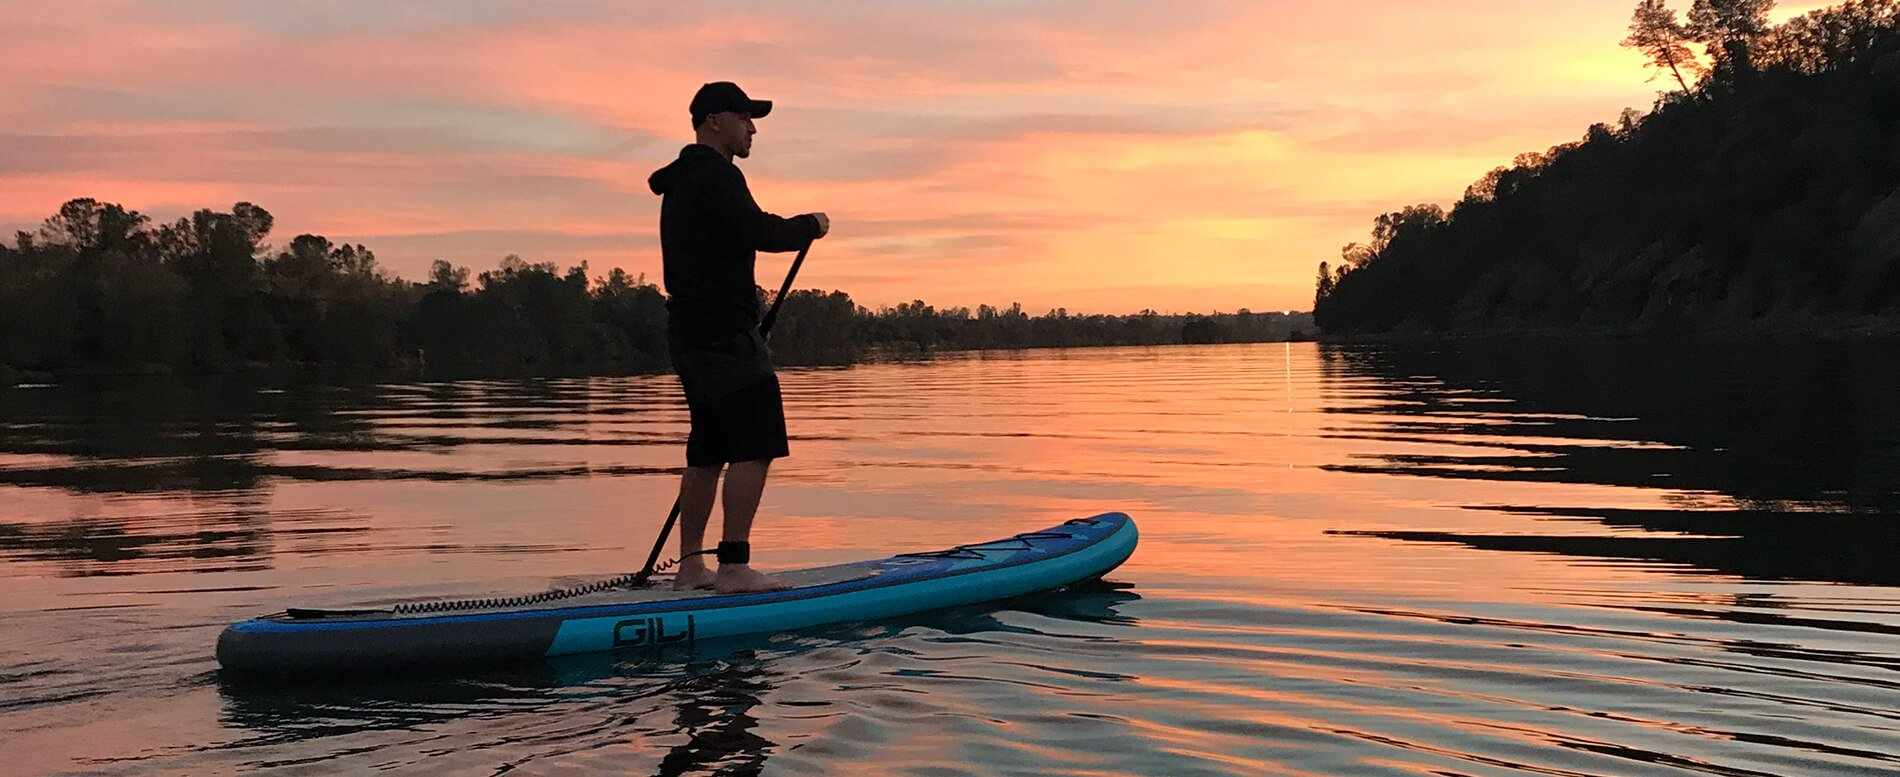 SUP Clothing: What To Wear Paddle Boarding: All Seasons (2020)